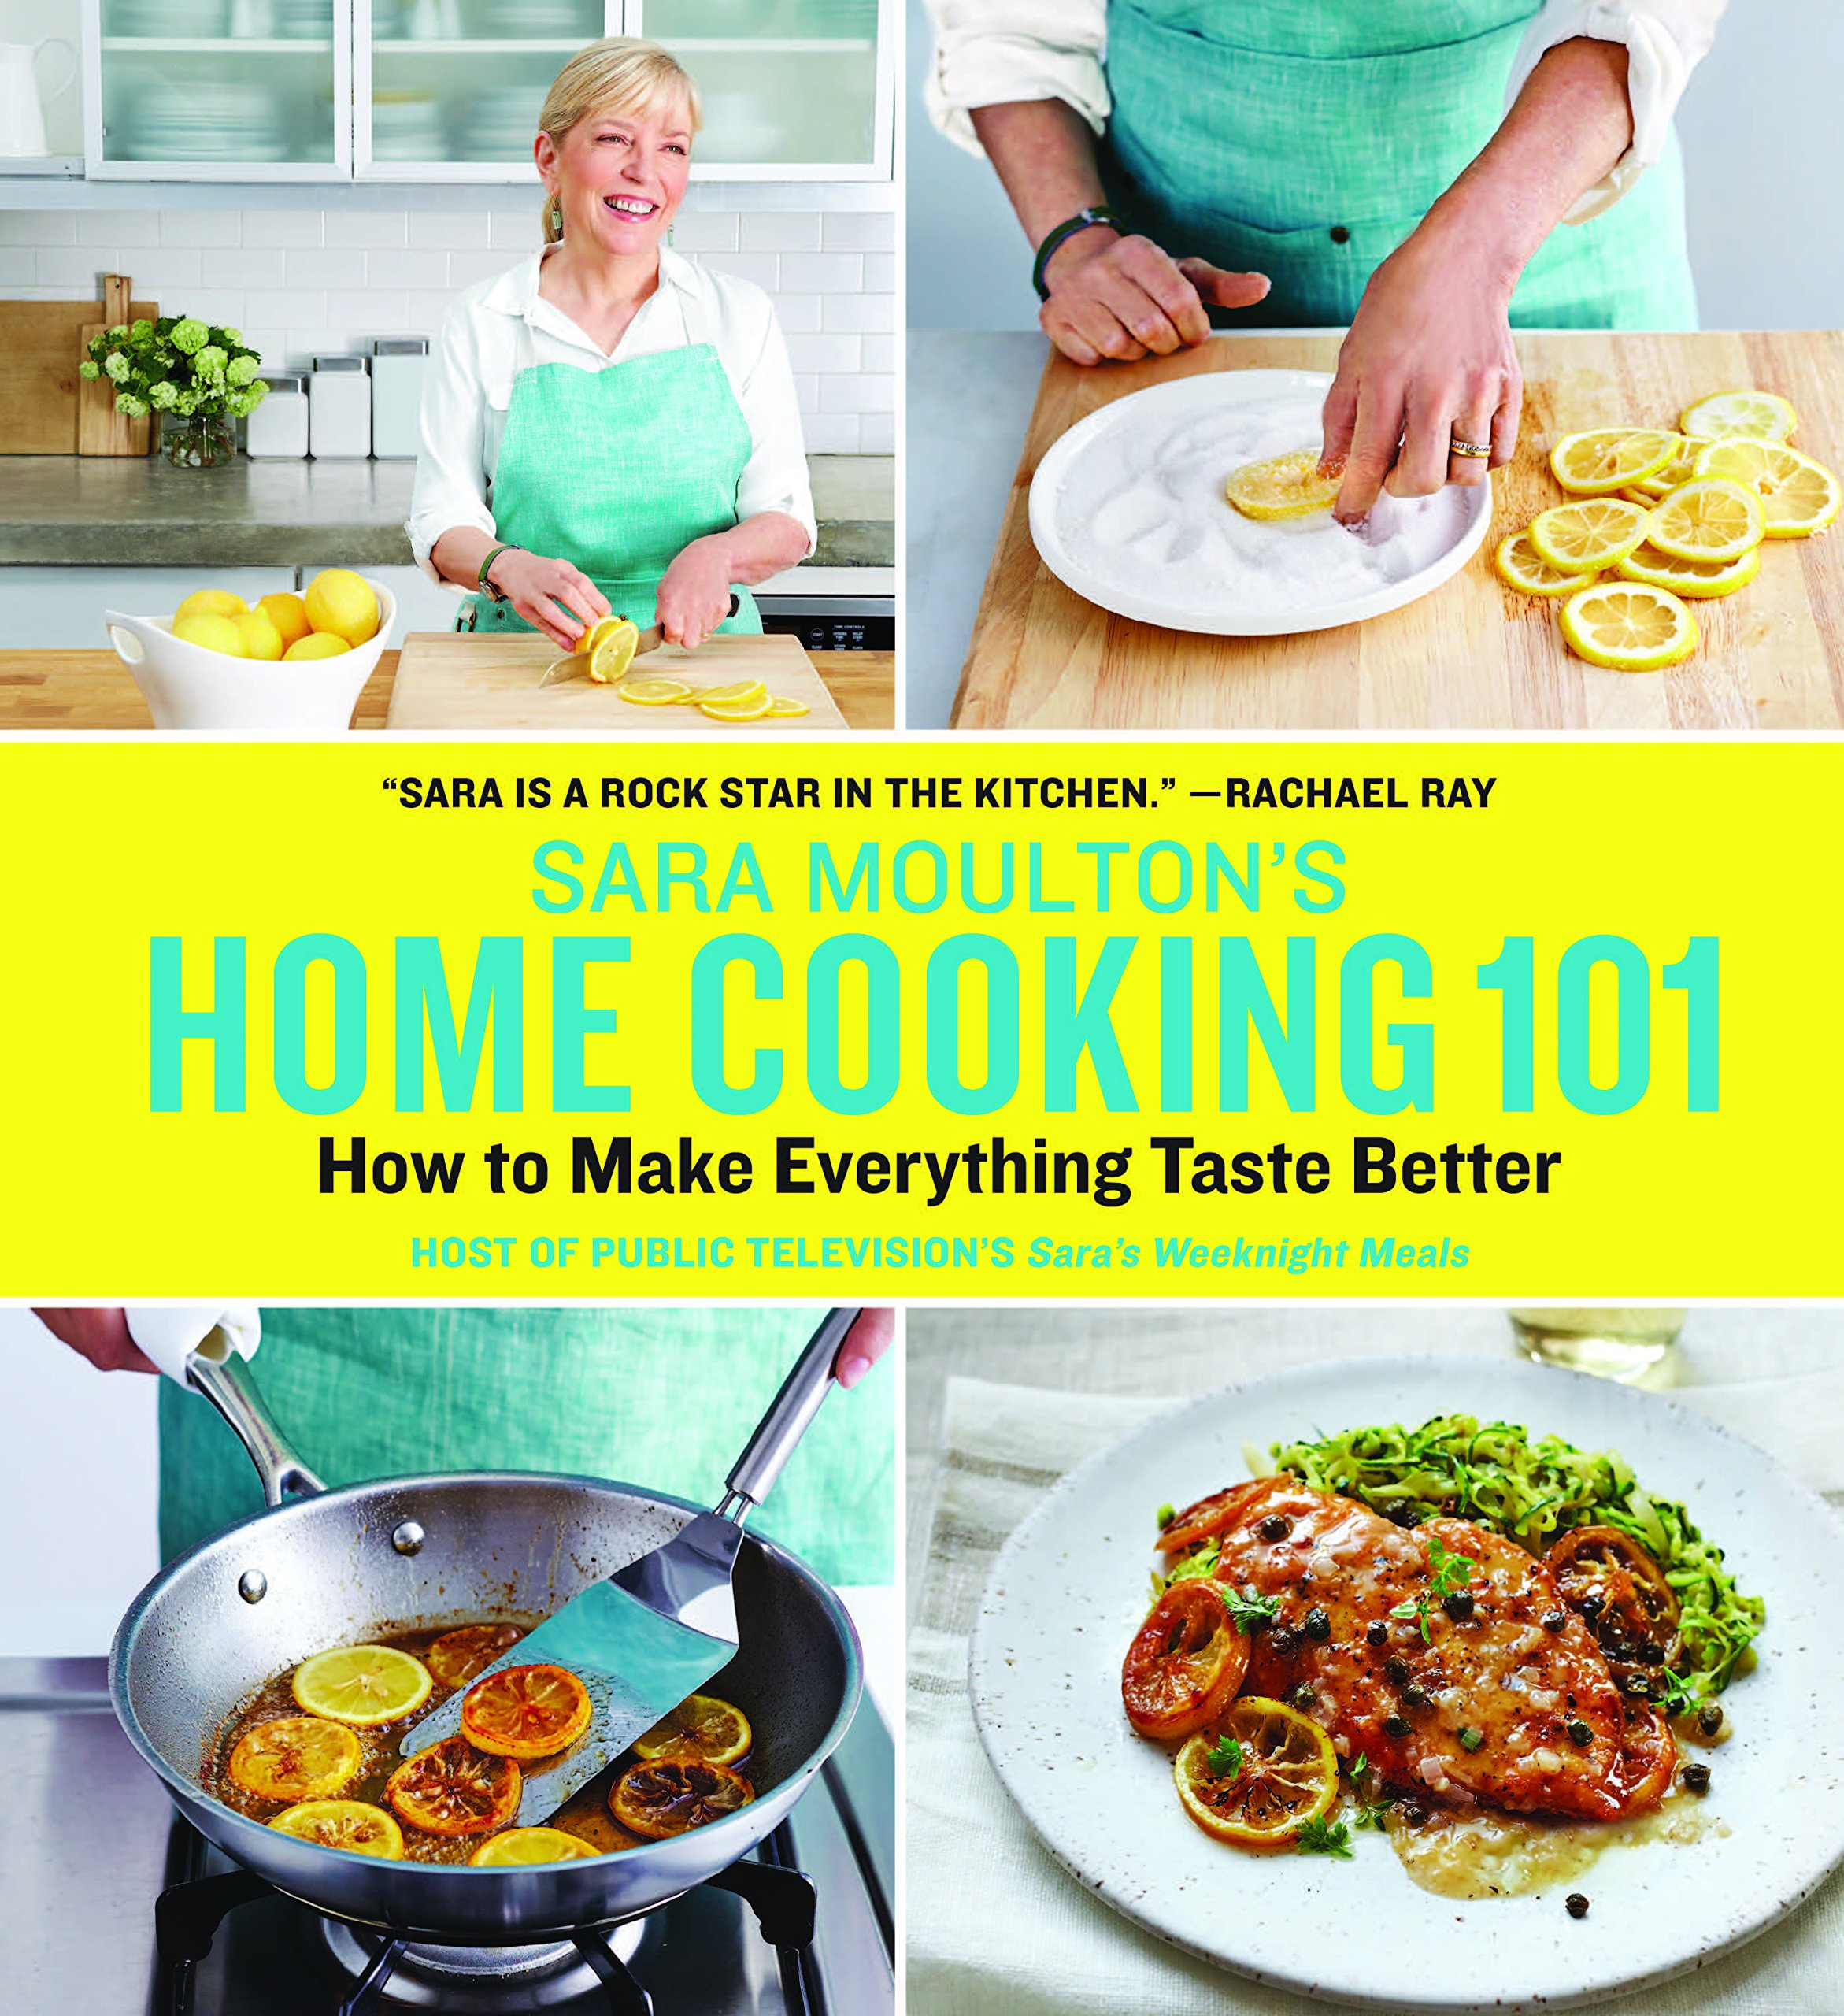 Sara Moulton's Home Cooking 101: How to Make Everything Taste Better